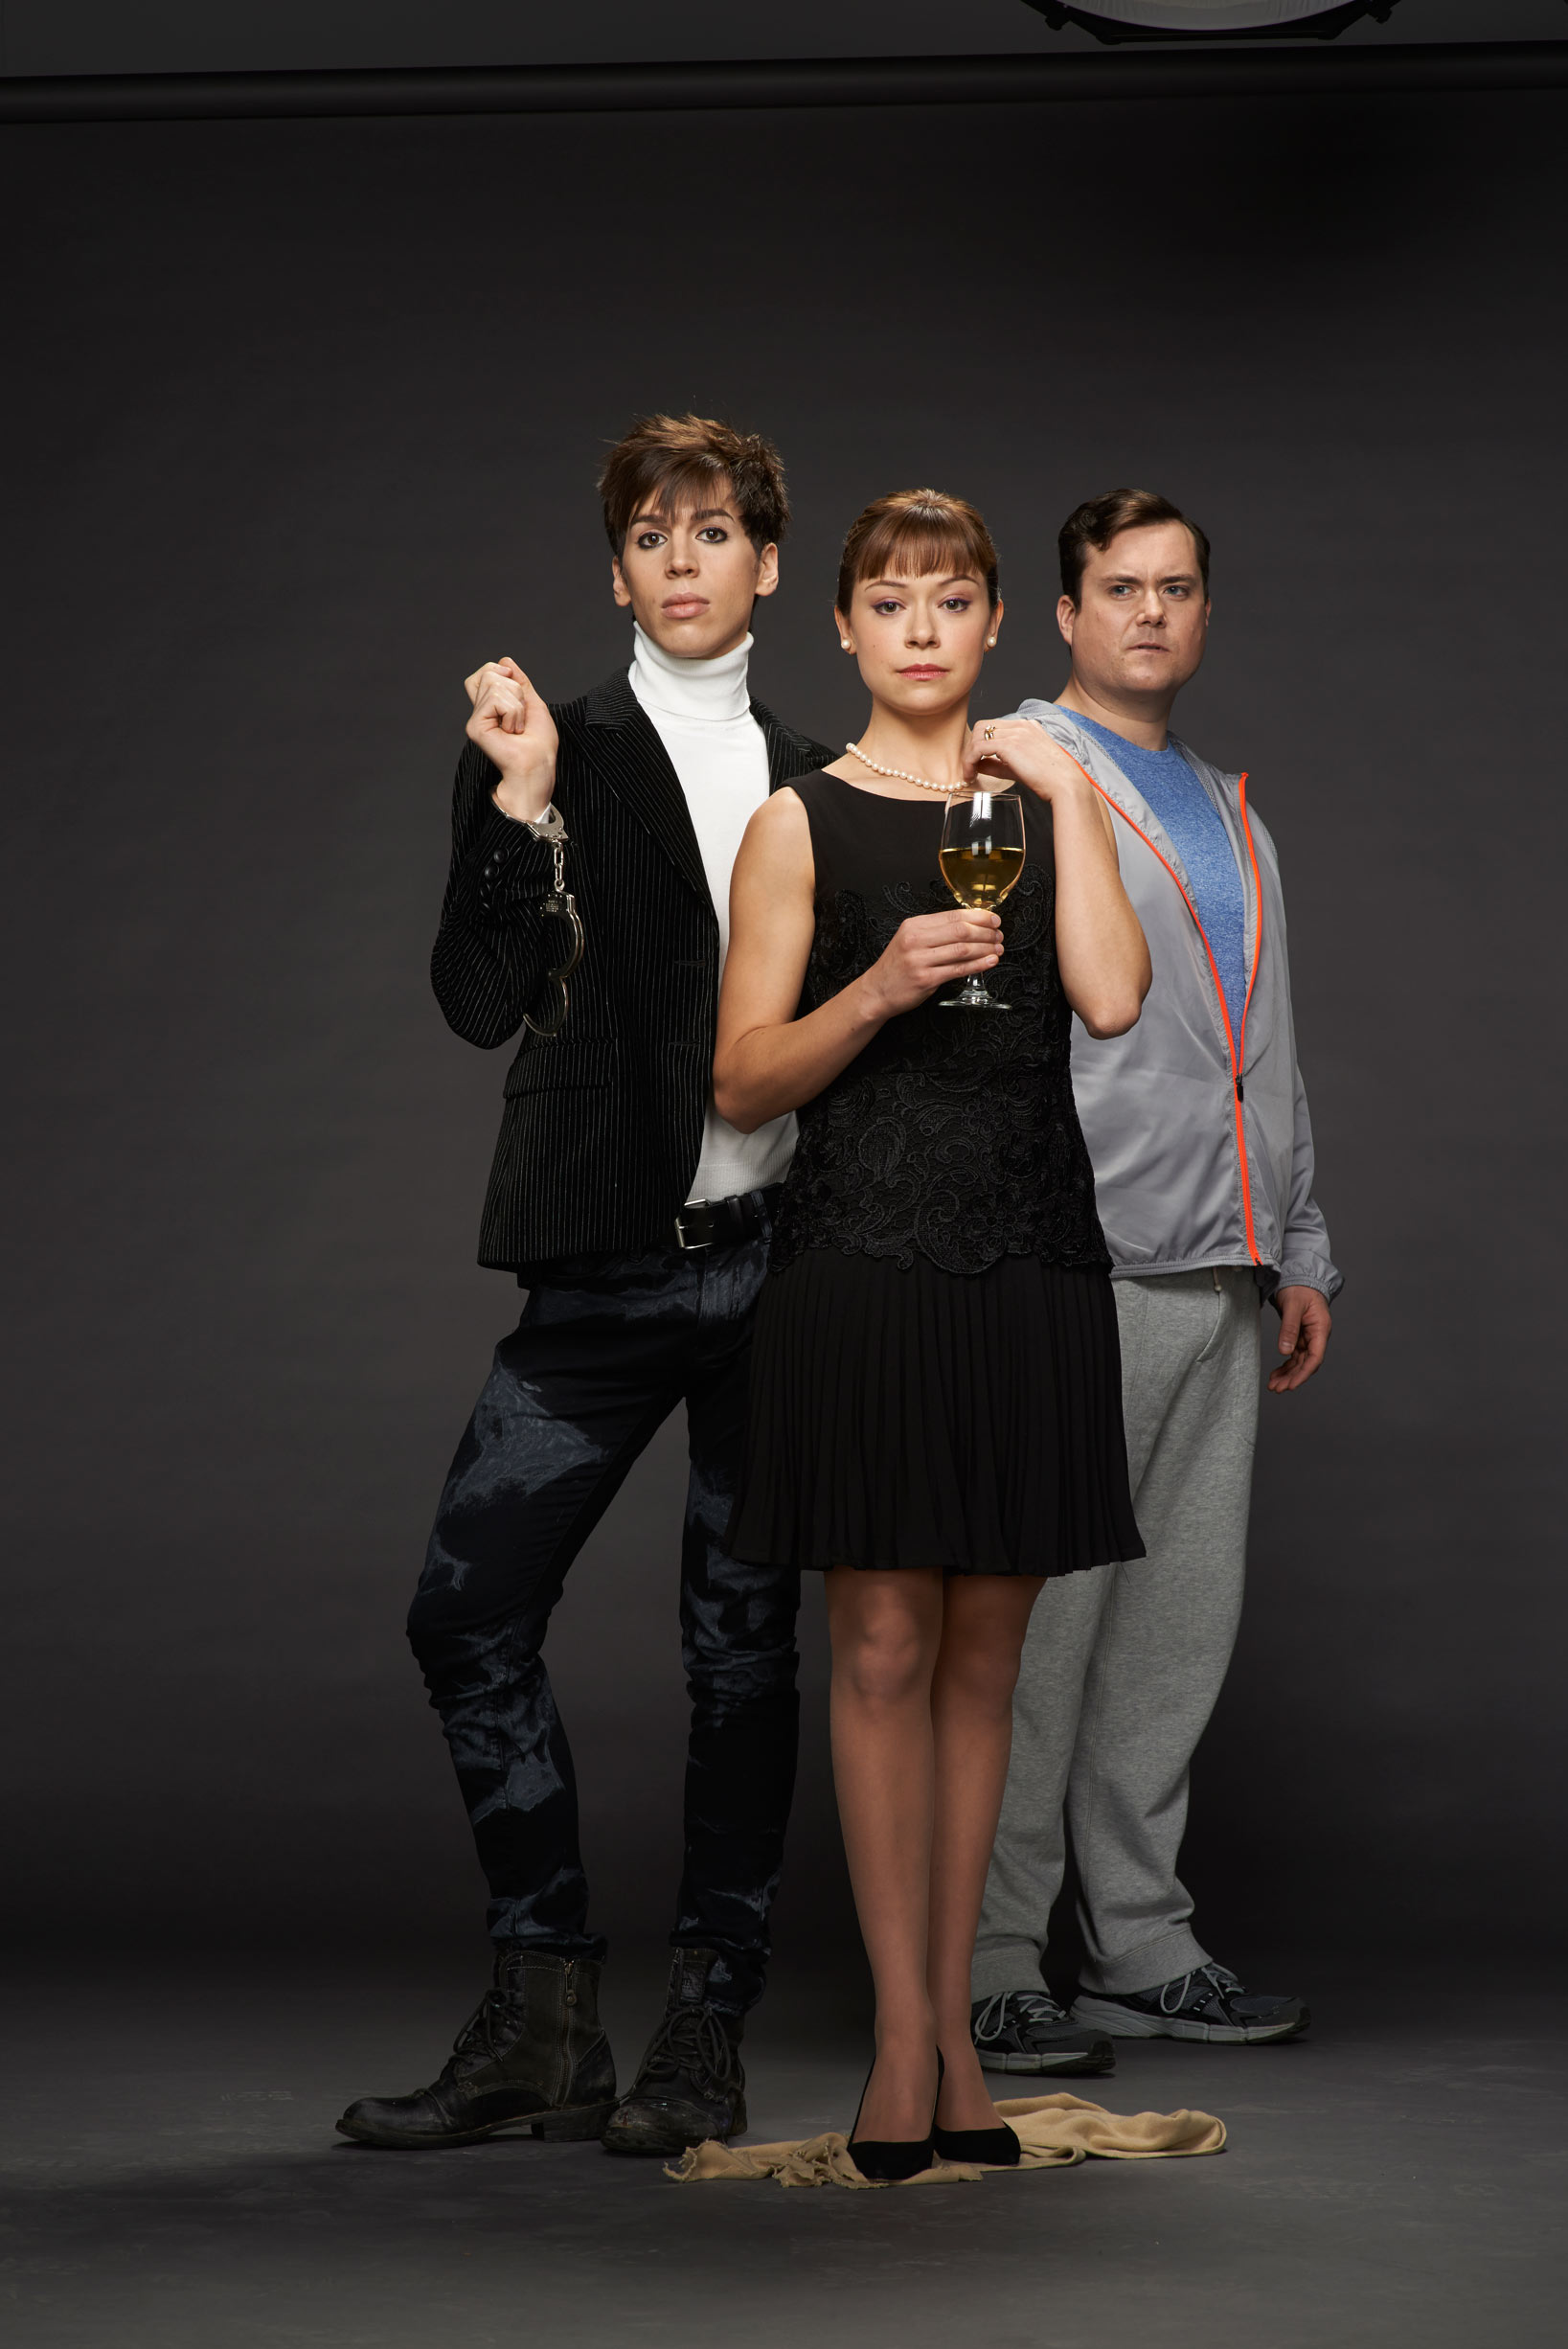 Felix Drawkins, Alison Hendrix and Donnie Hendrix Season 2 Promotional Picture